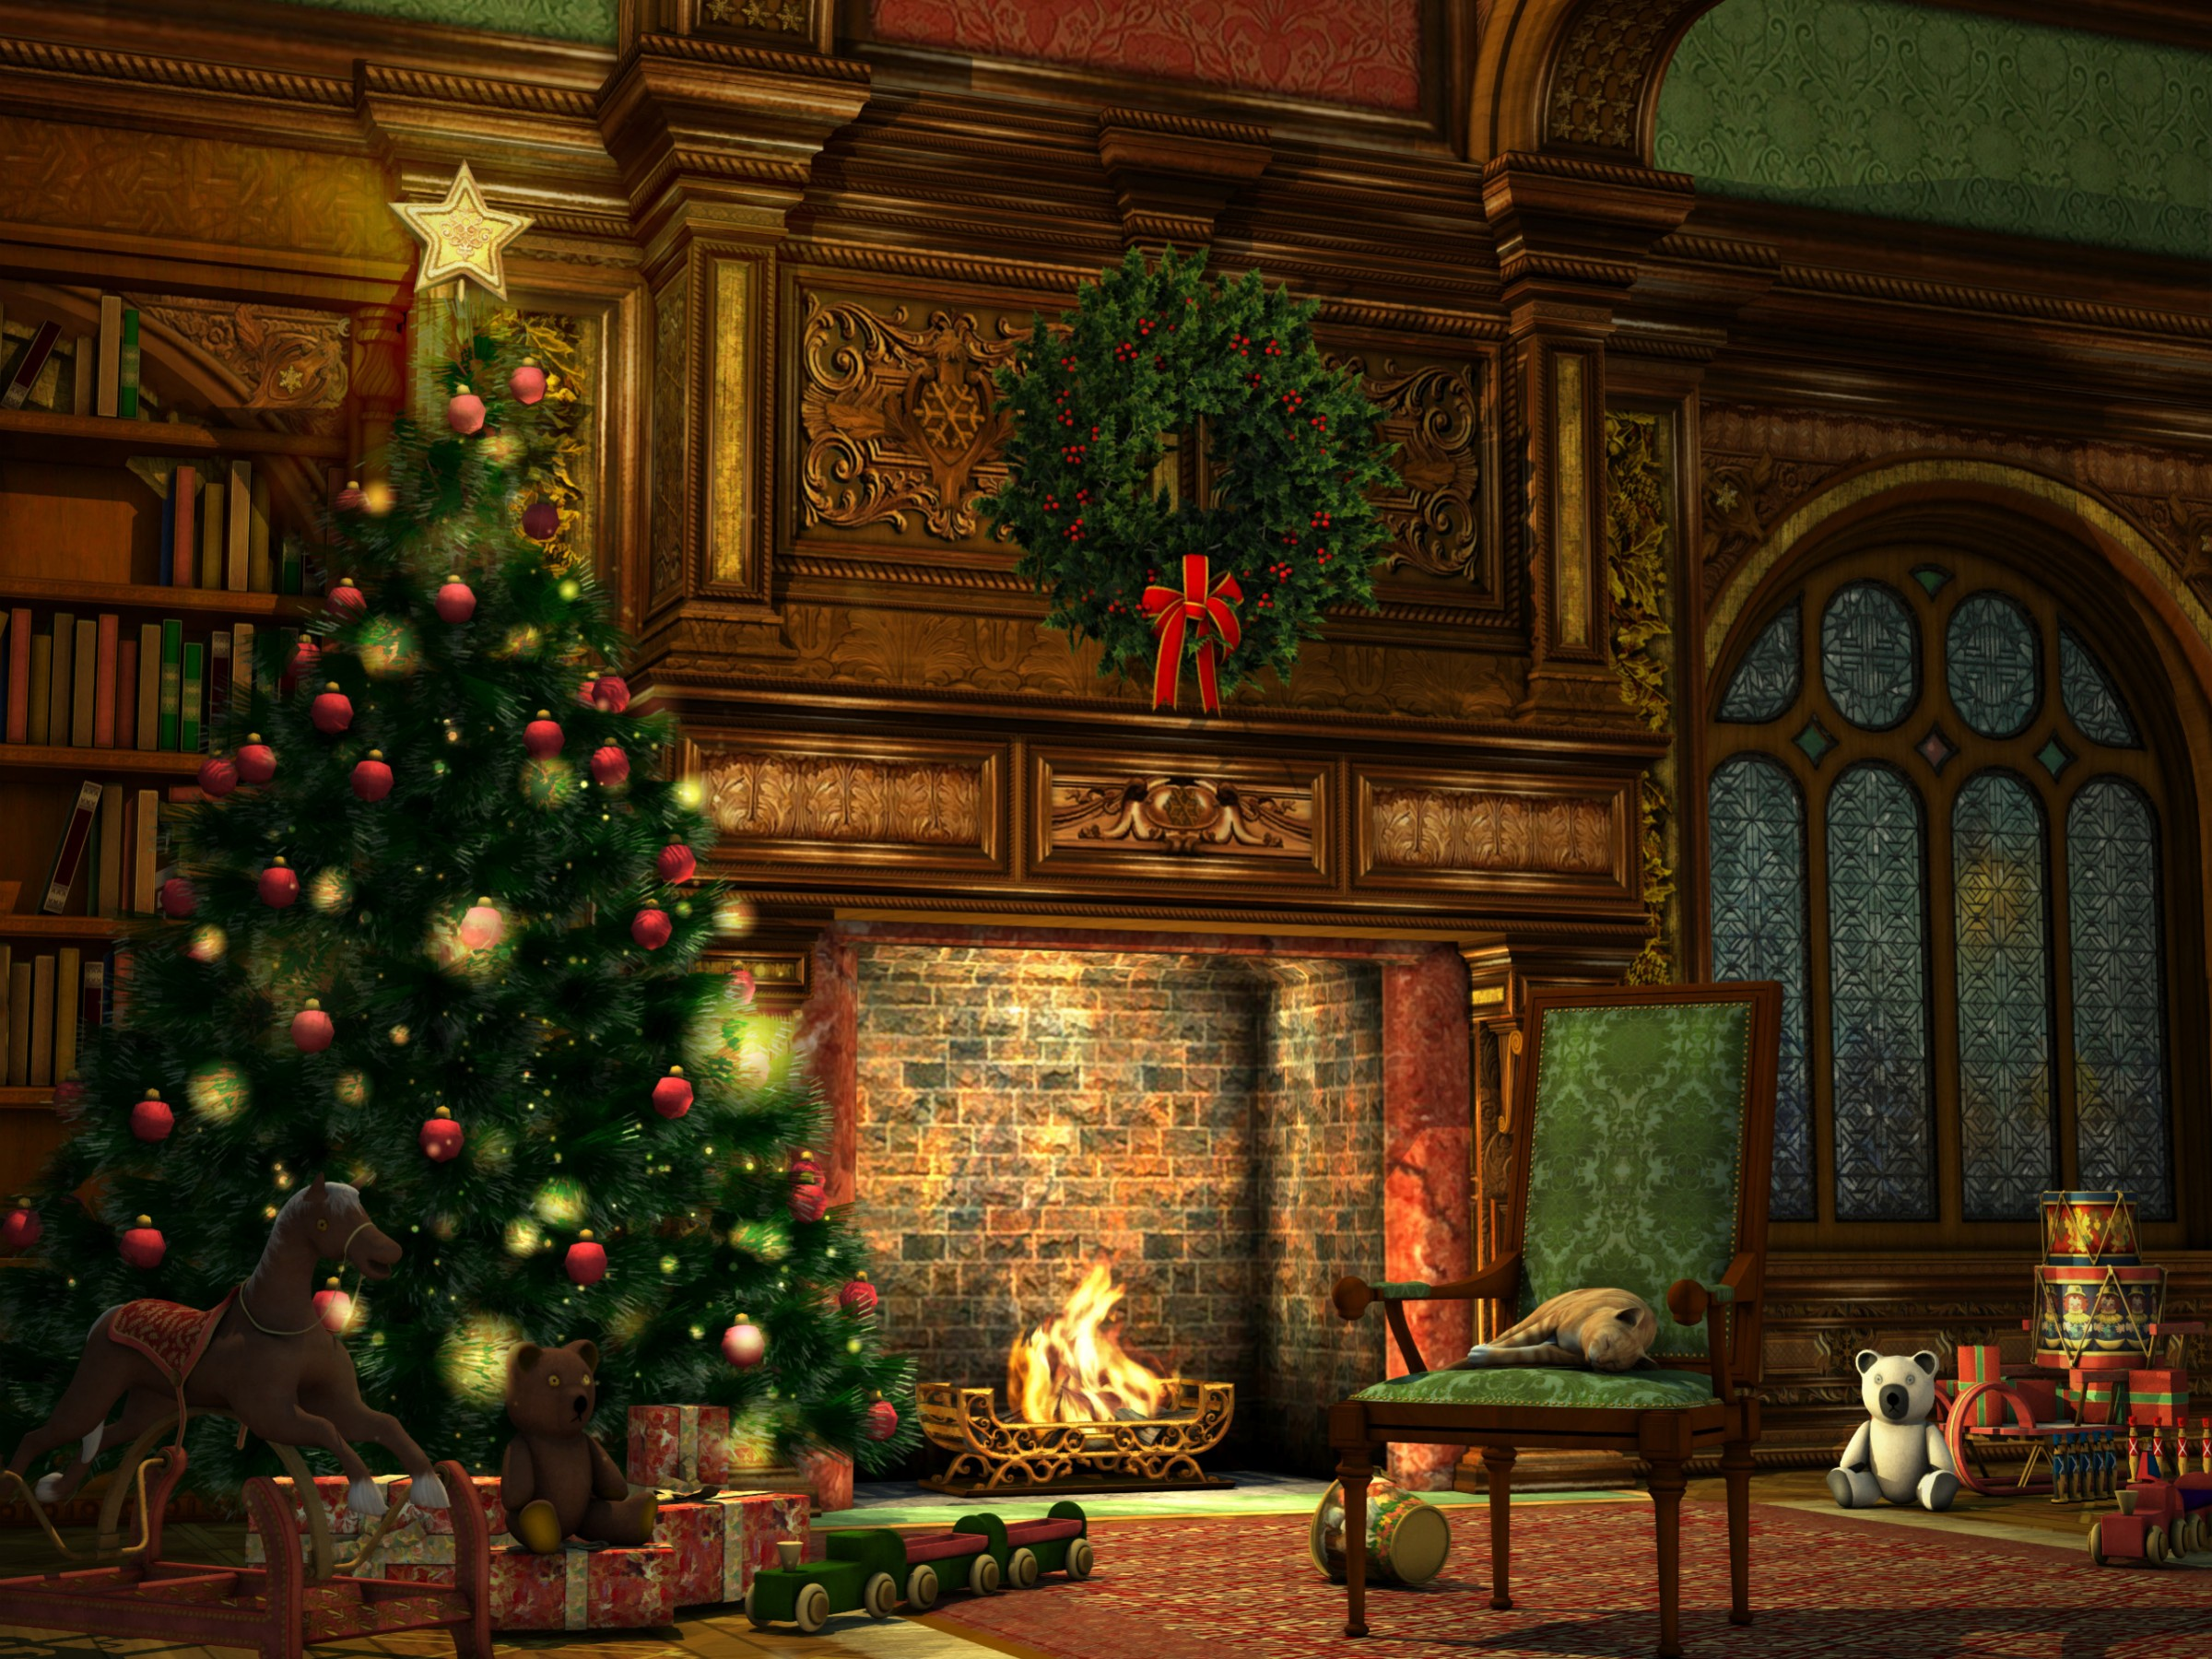 christmas fireplace wallpapers high quality download free. Black Bedroom Furniture Sets. Home Design Ideas